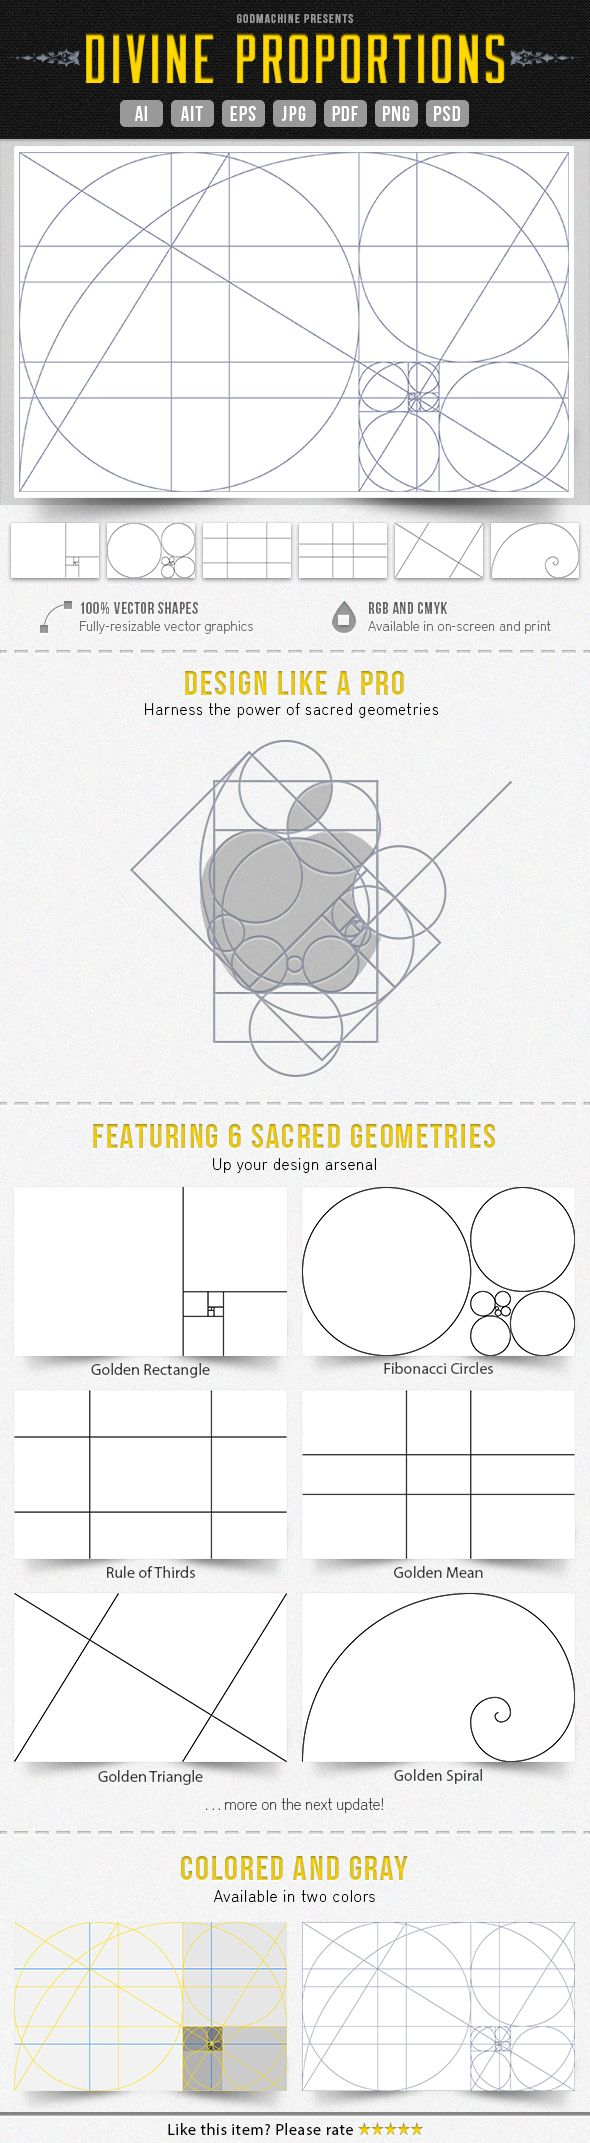 vectorized sacred geometries design logo layout apple also divine proportion rh pinterest